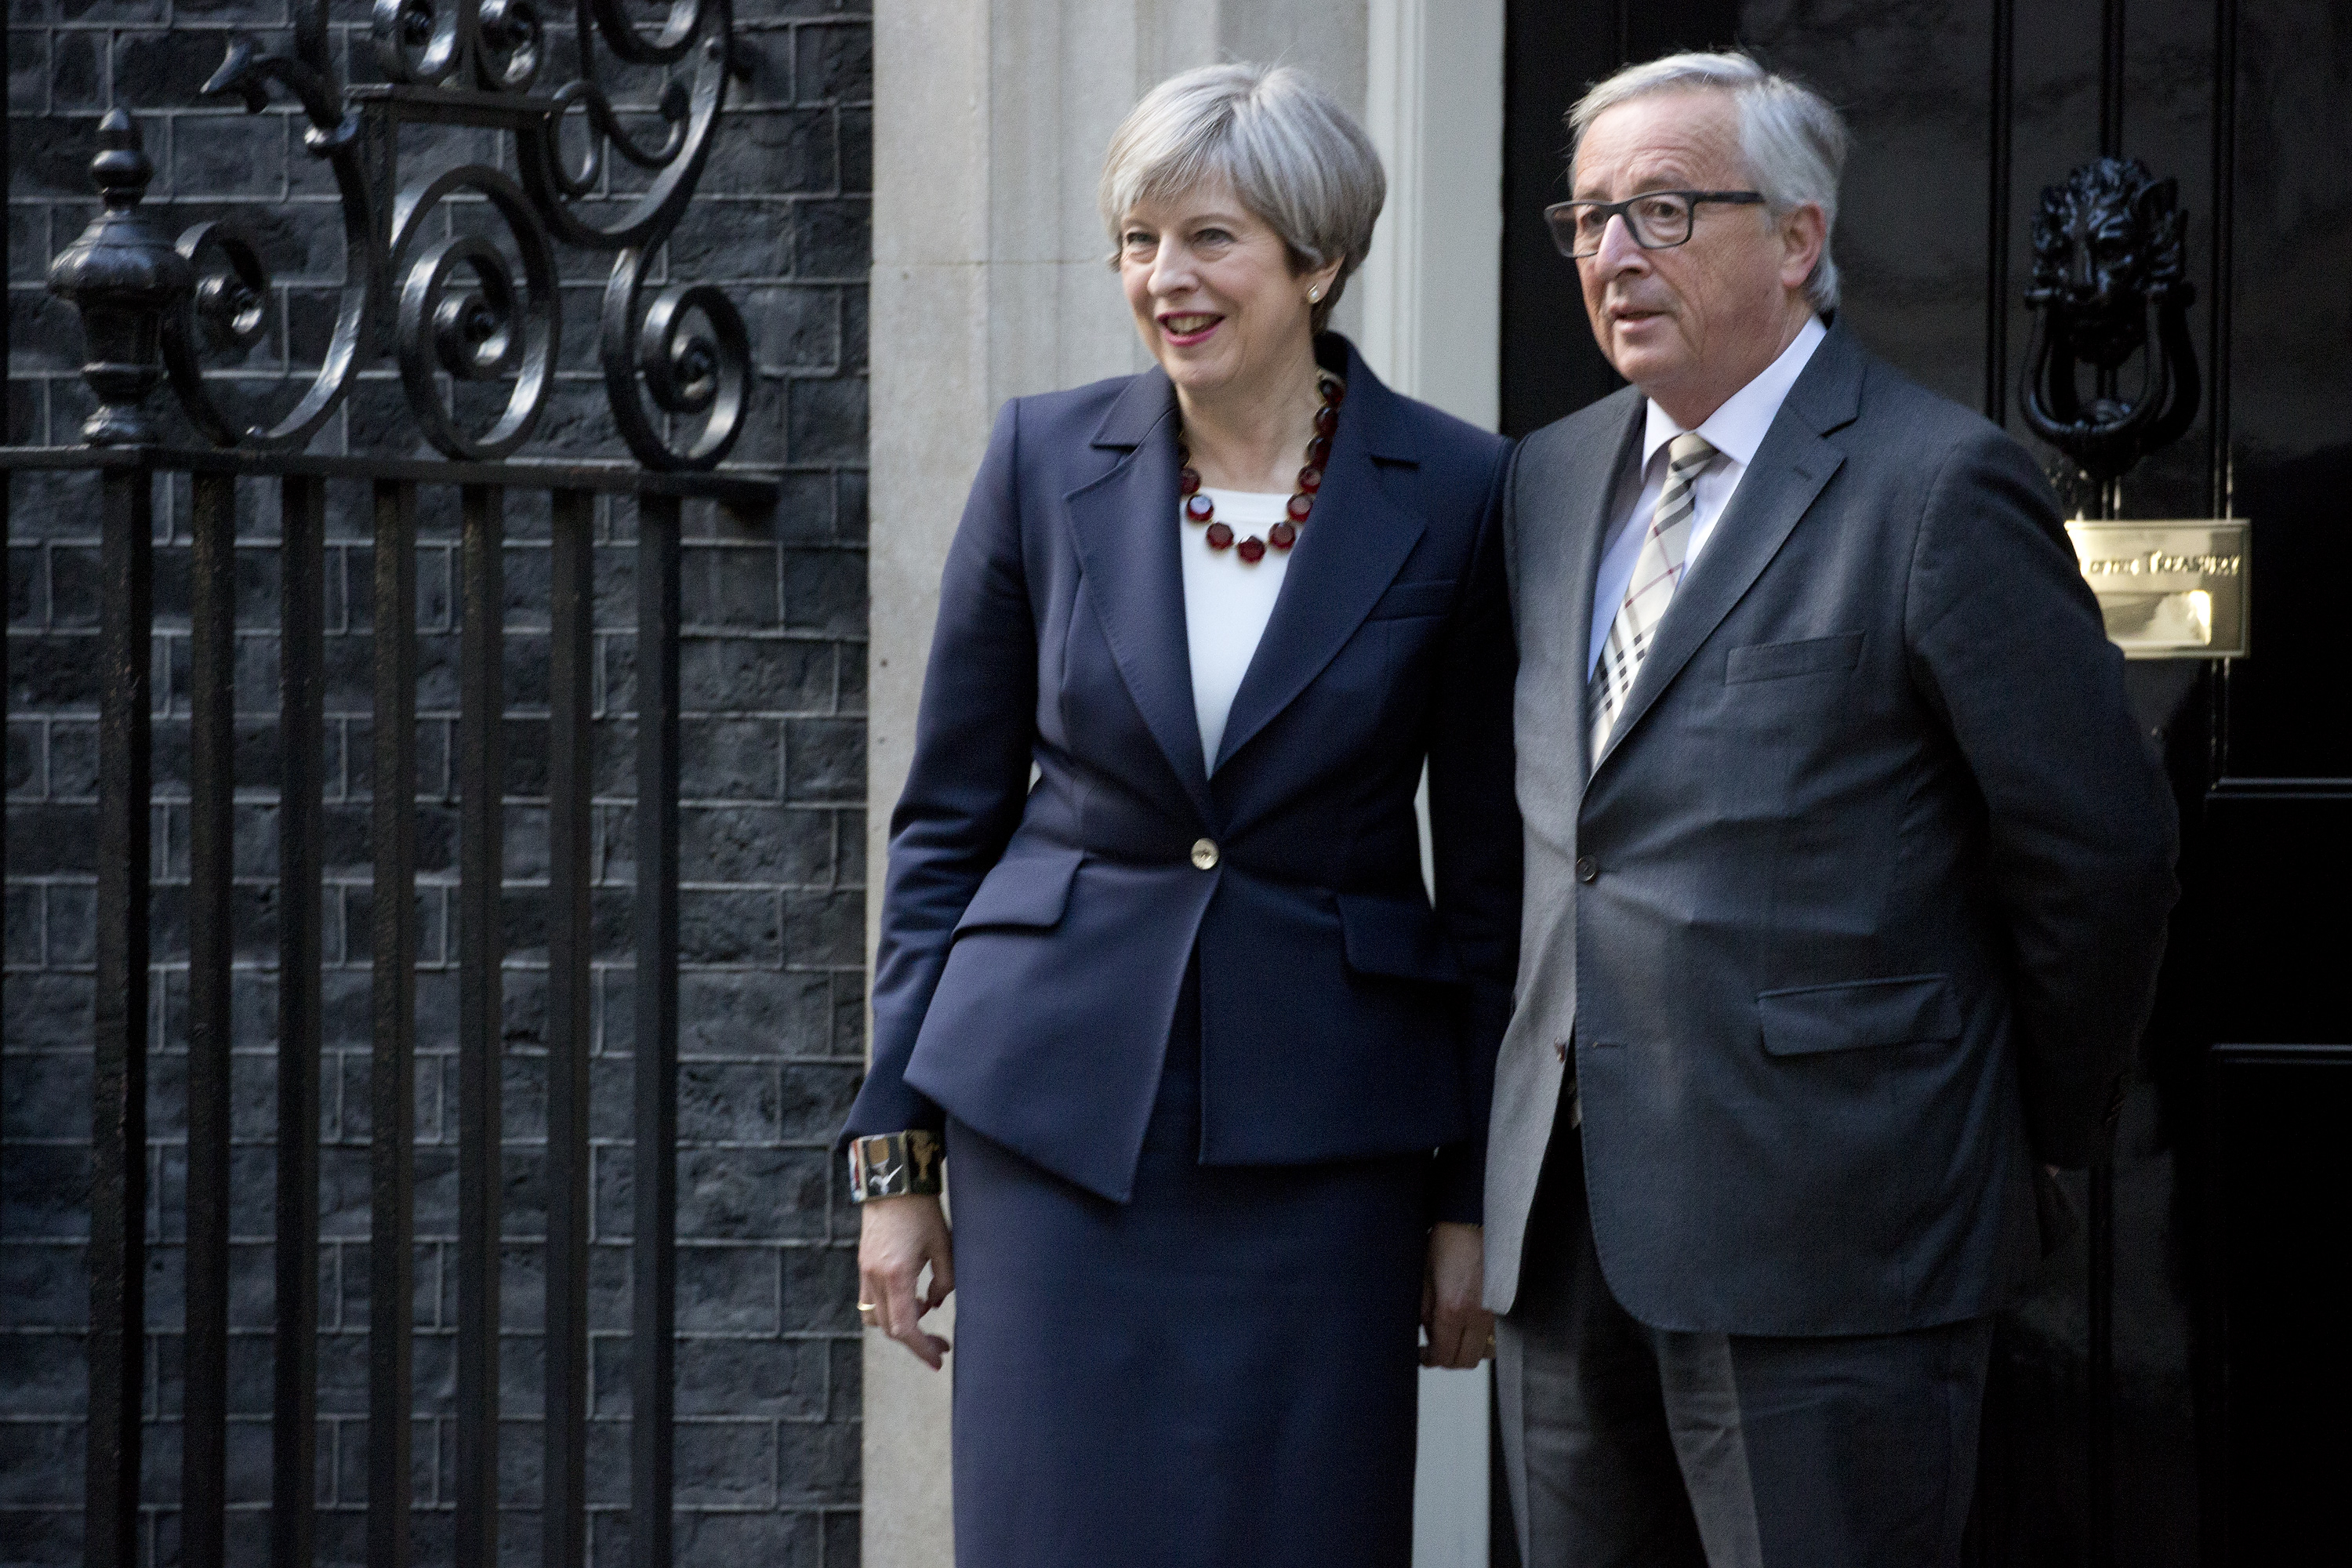 Theresa May Meets EU President Jean-Claude Juncker